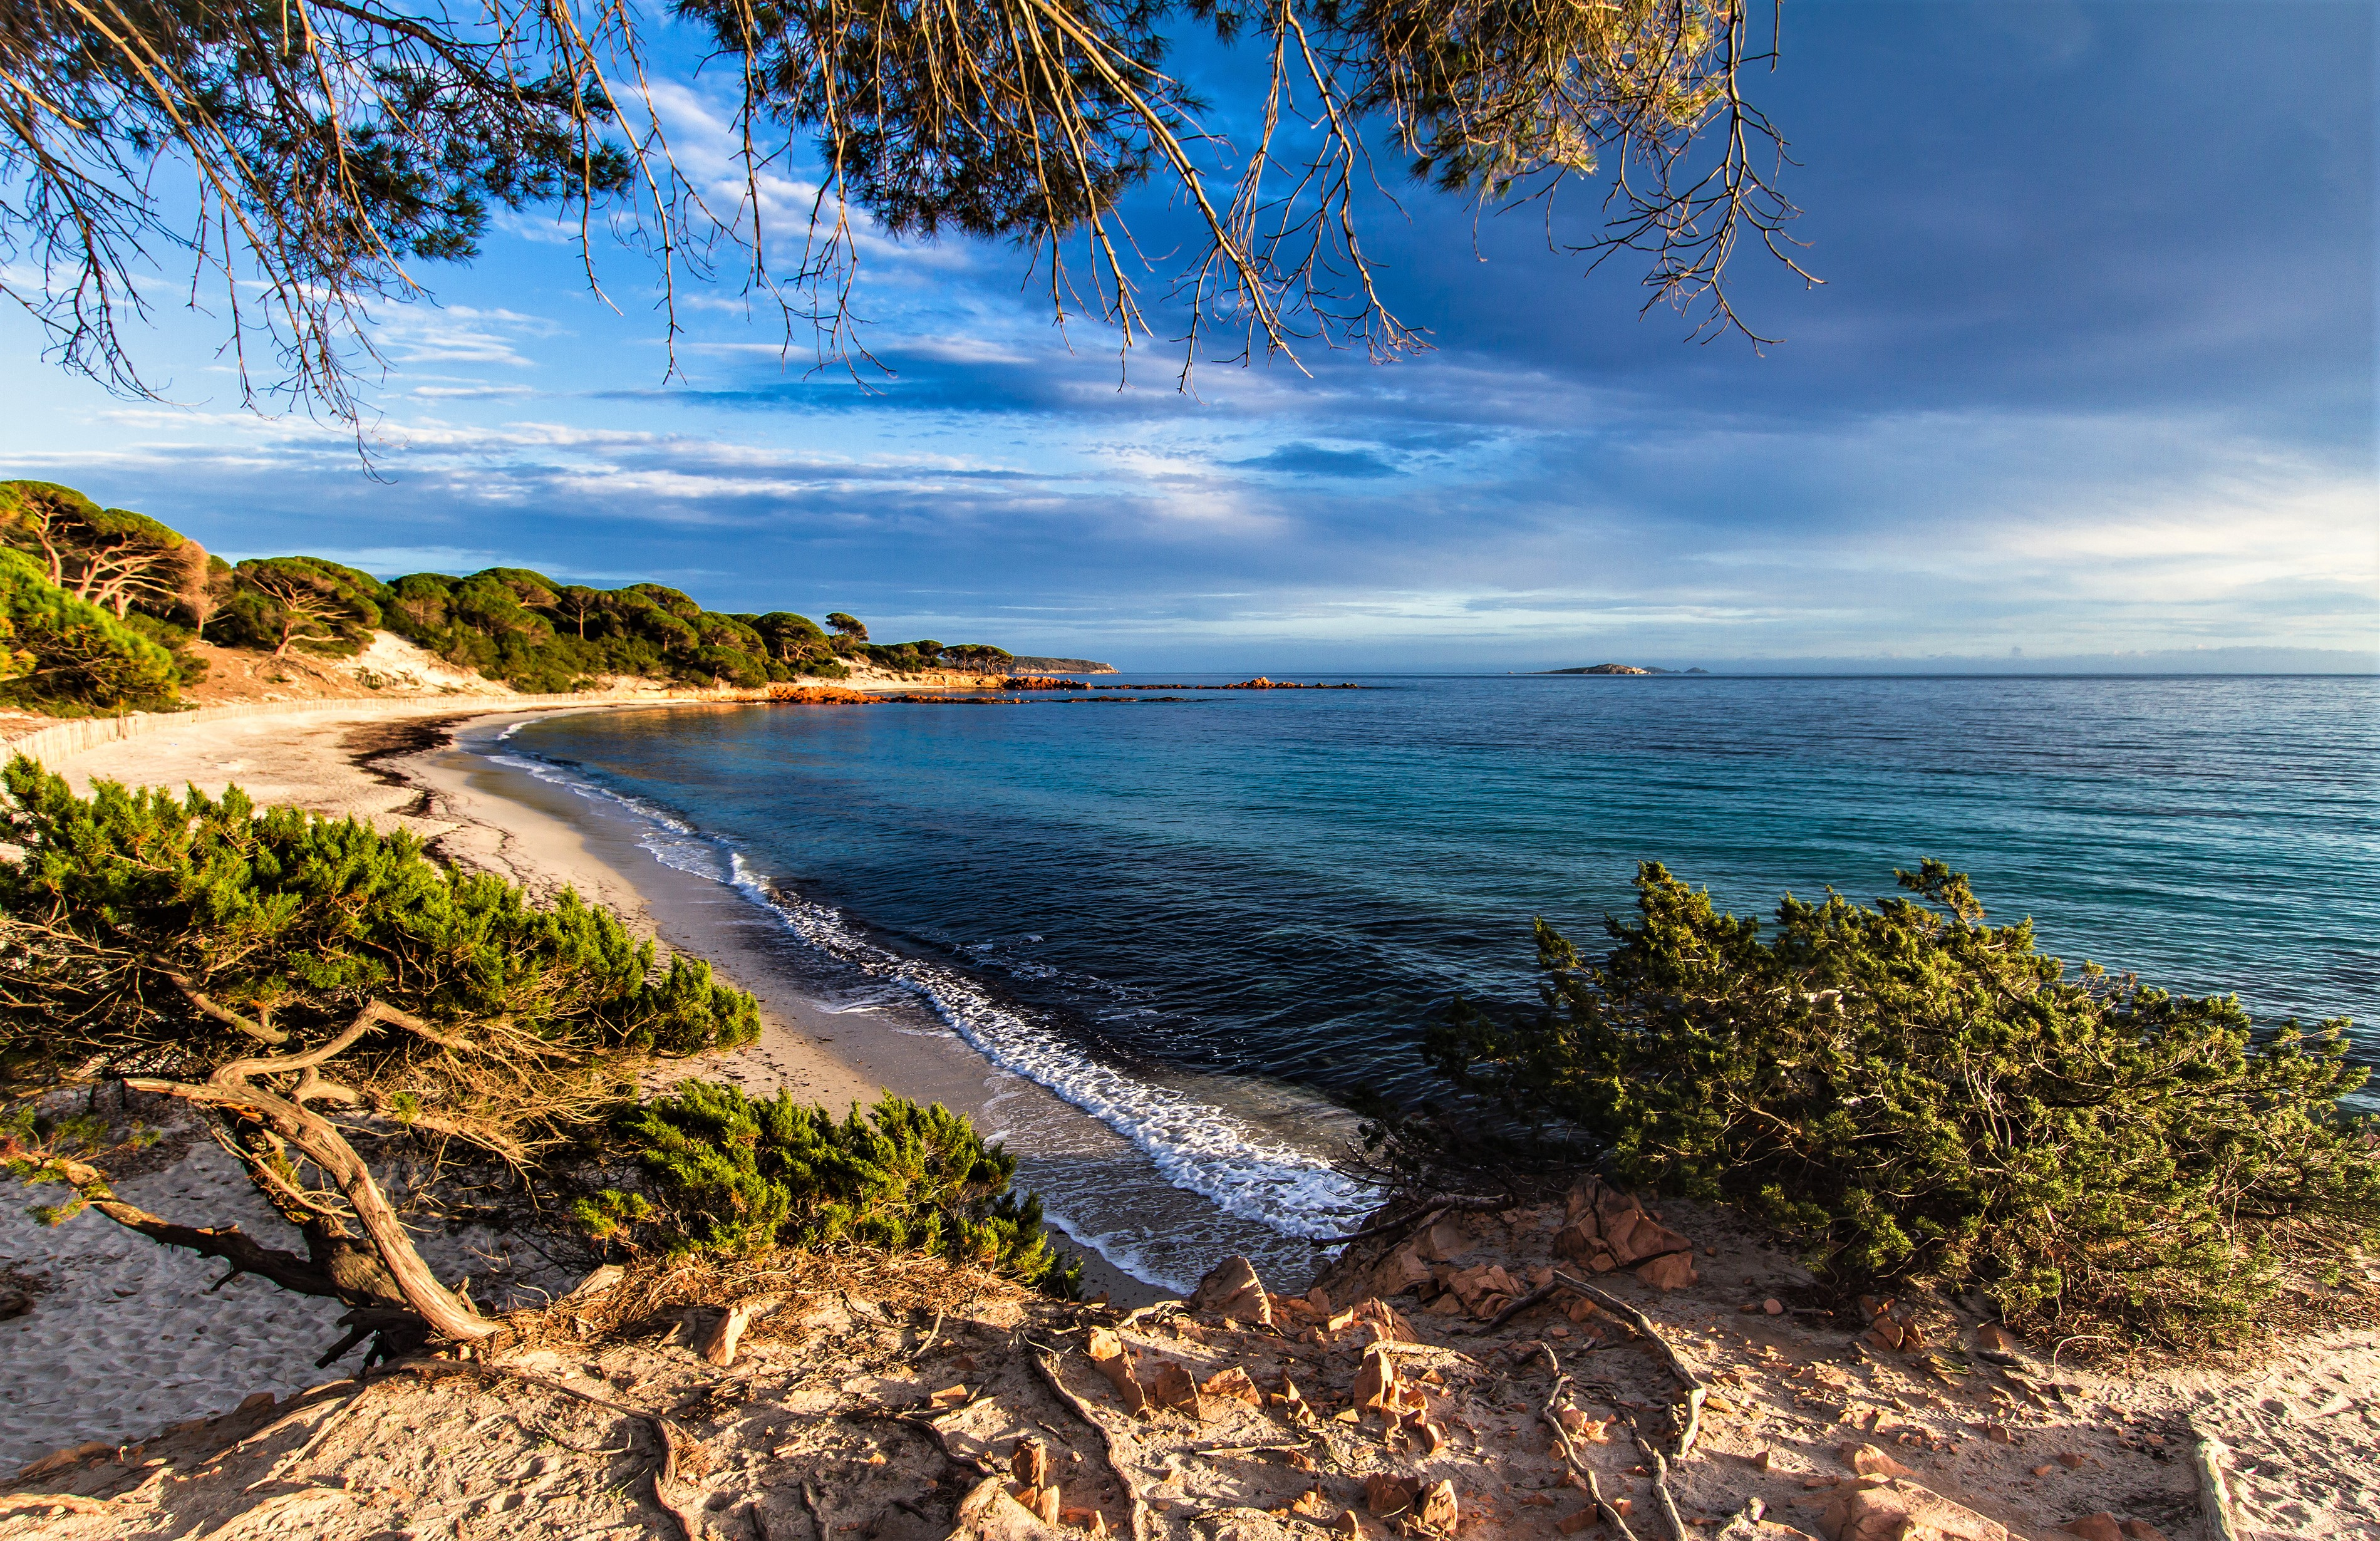 Coast of Corsica France HD Wallpaper Background Image 3800x2460